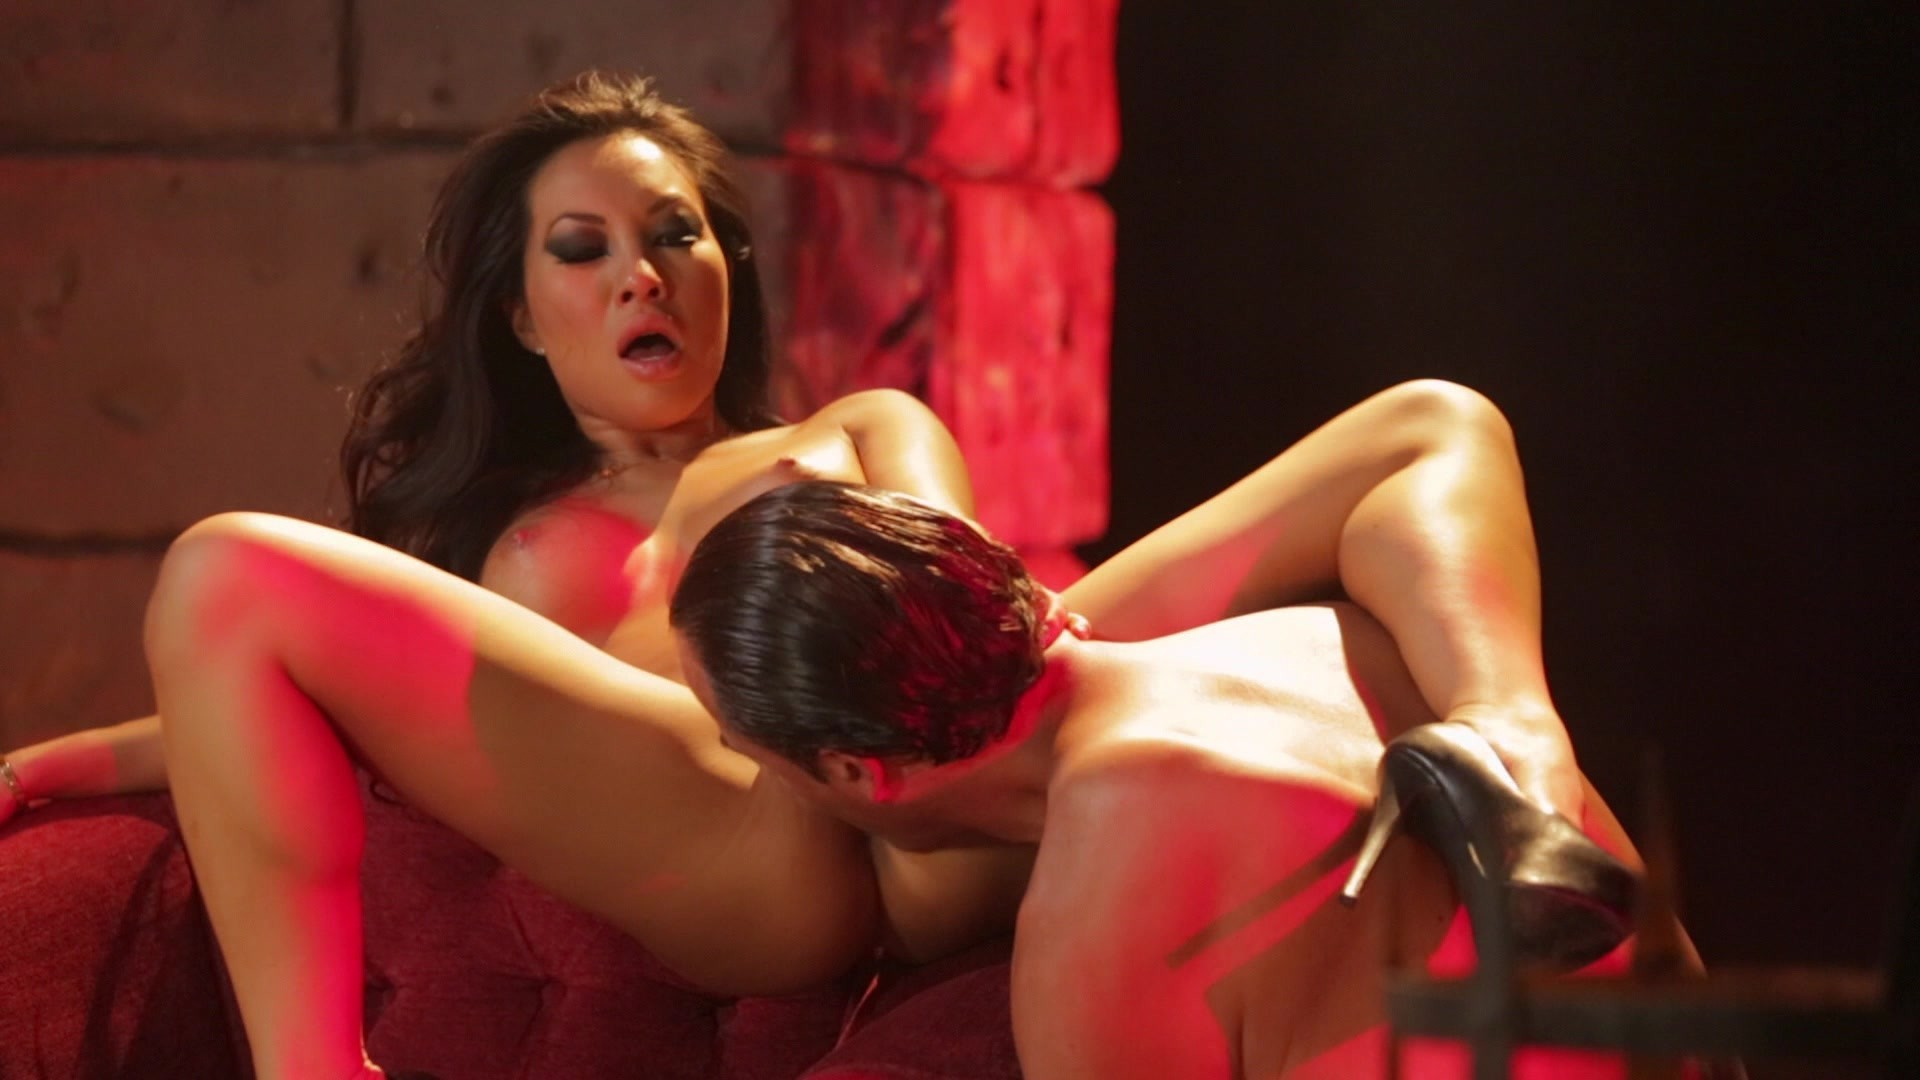 Scene with Asa Akira - image 8 out of 20